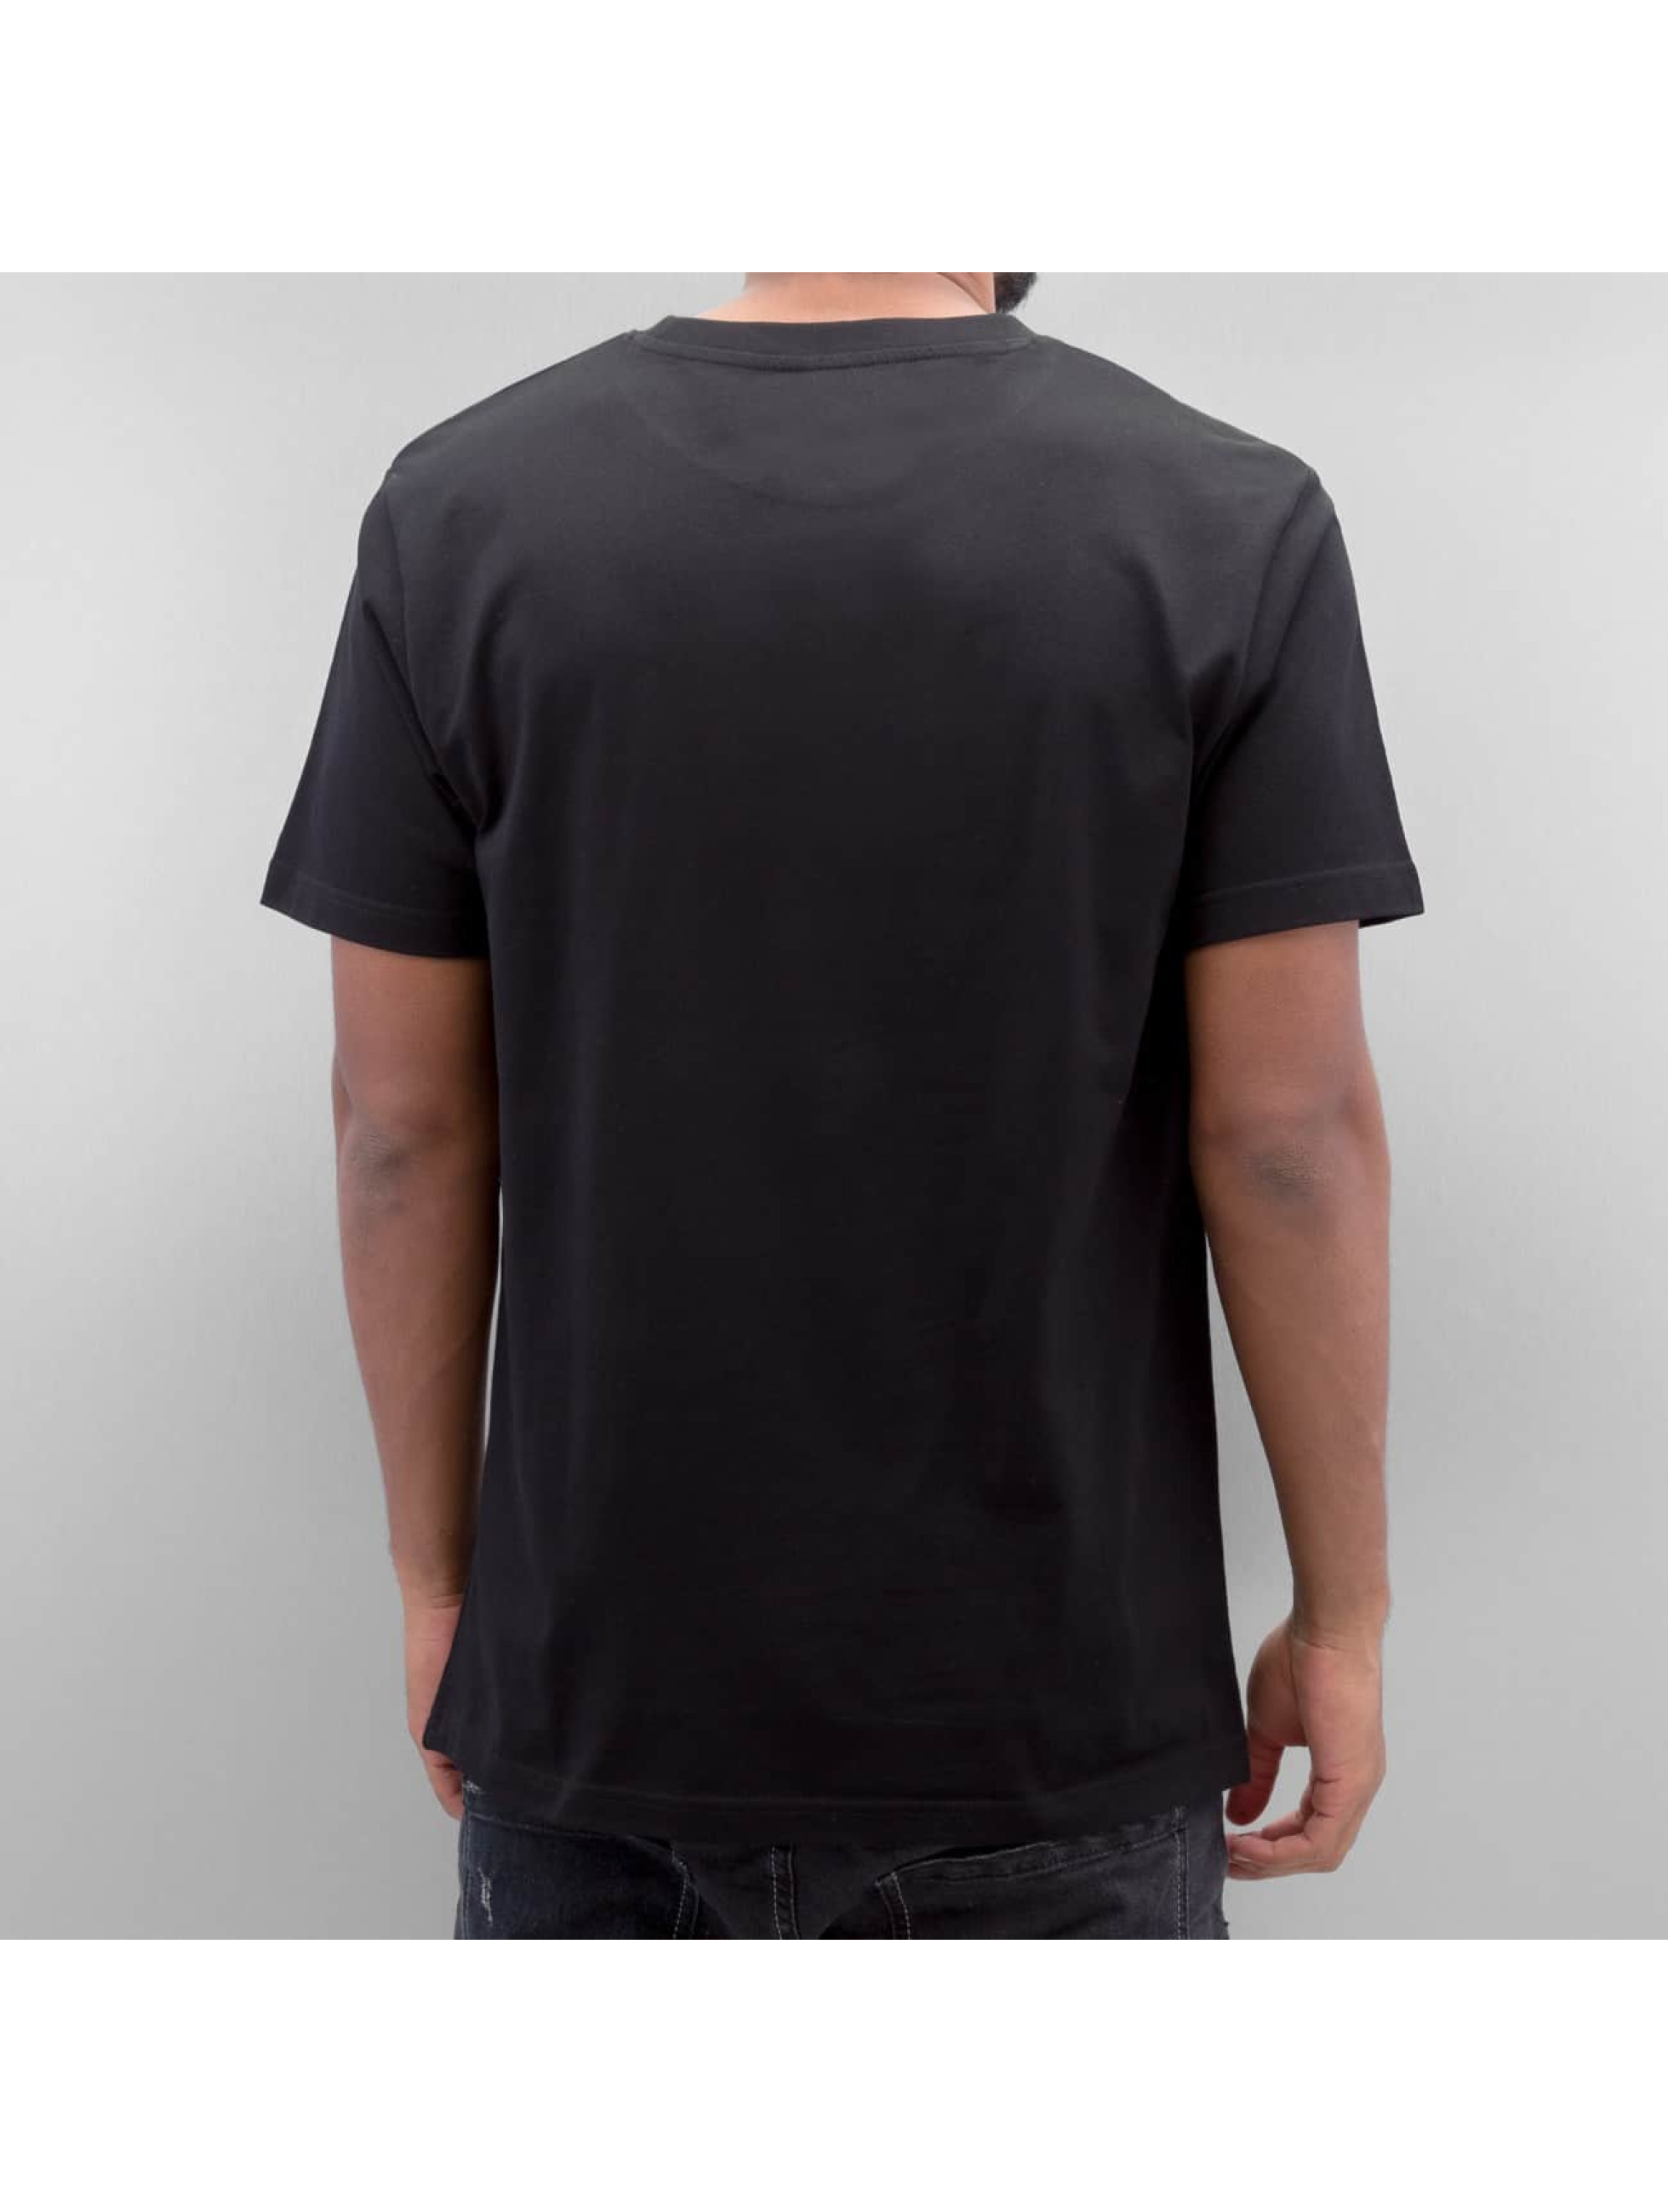 Mister Tee T-Shirt Powder black